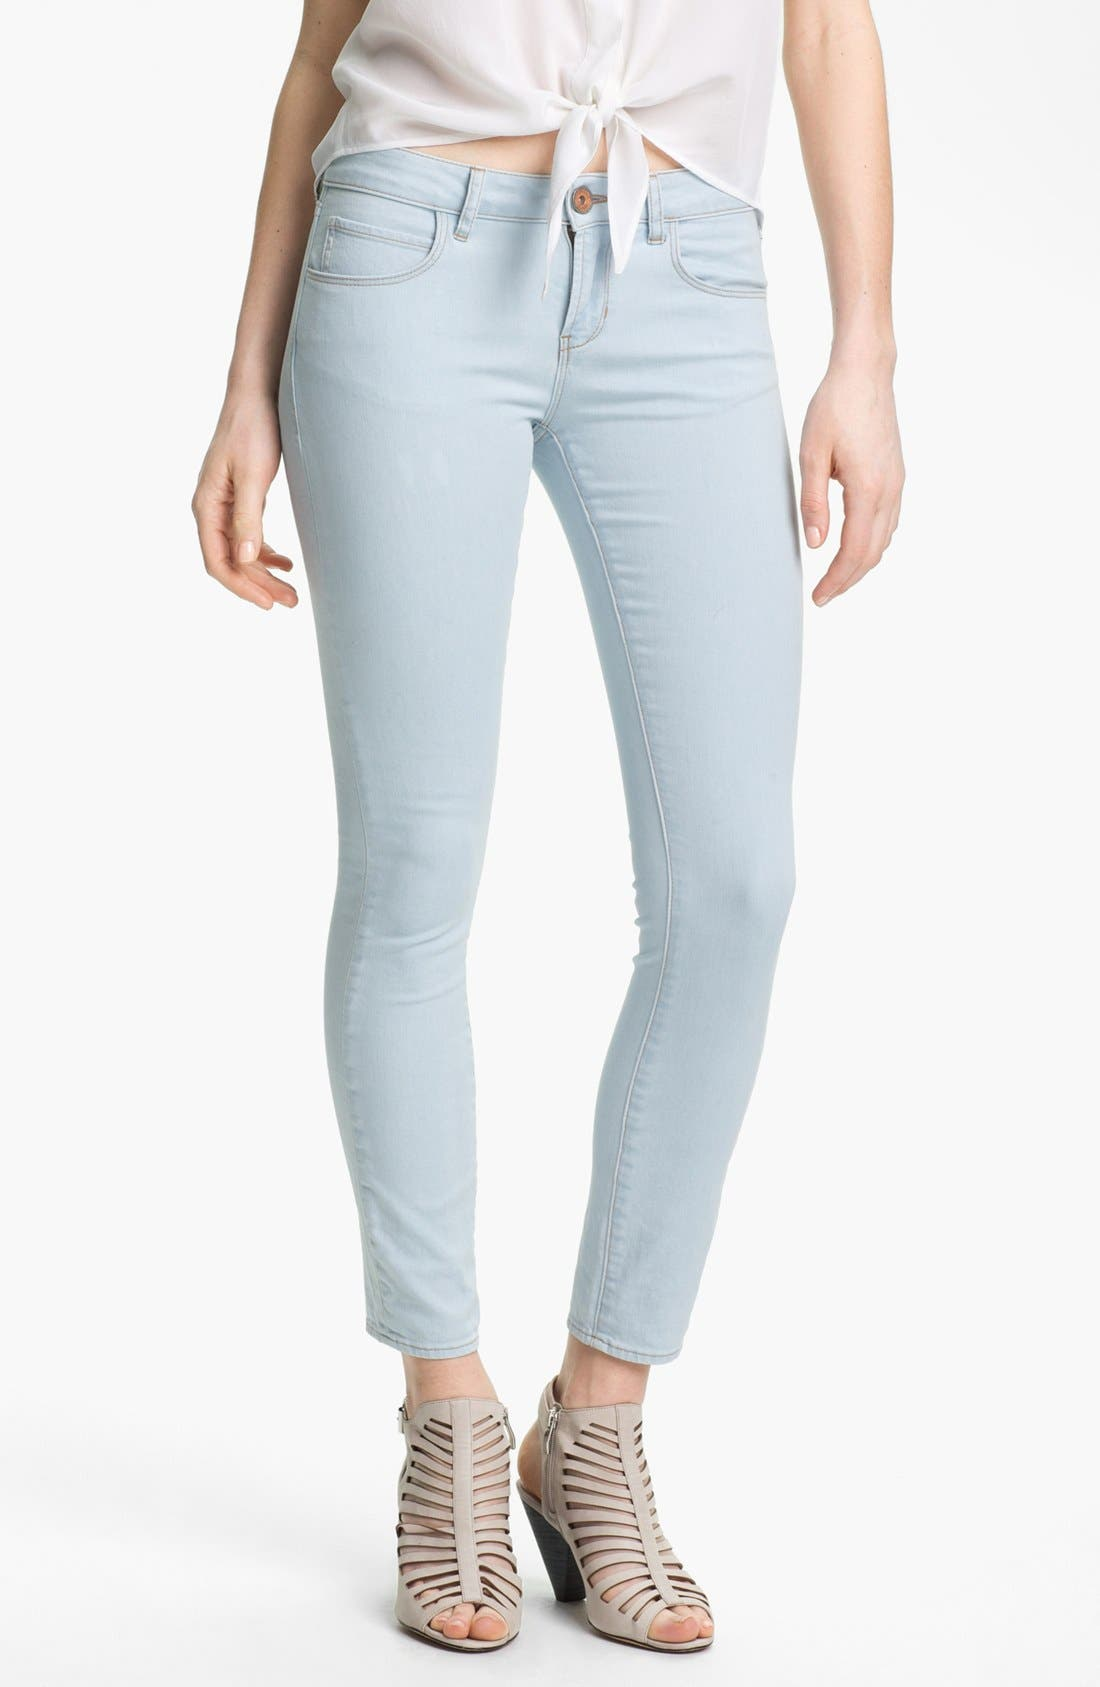 Main Image - Two by Vince Camuto Skinny Jeans (Pale Blue)